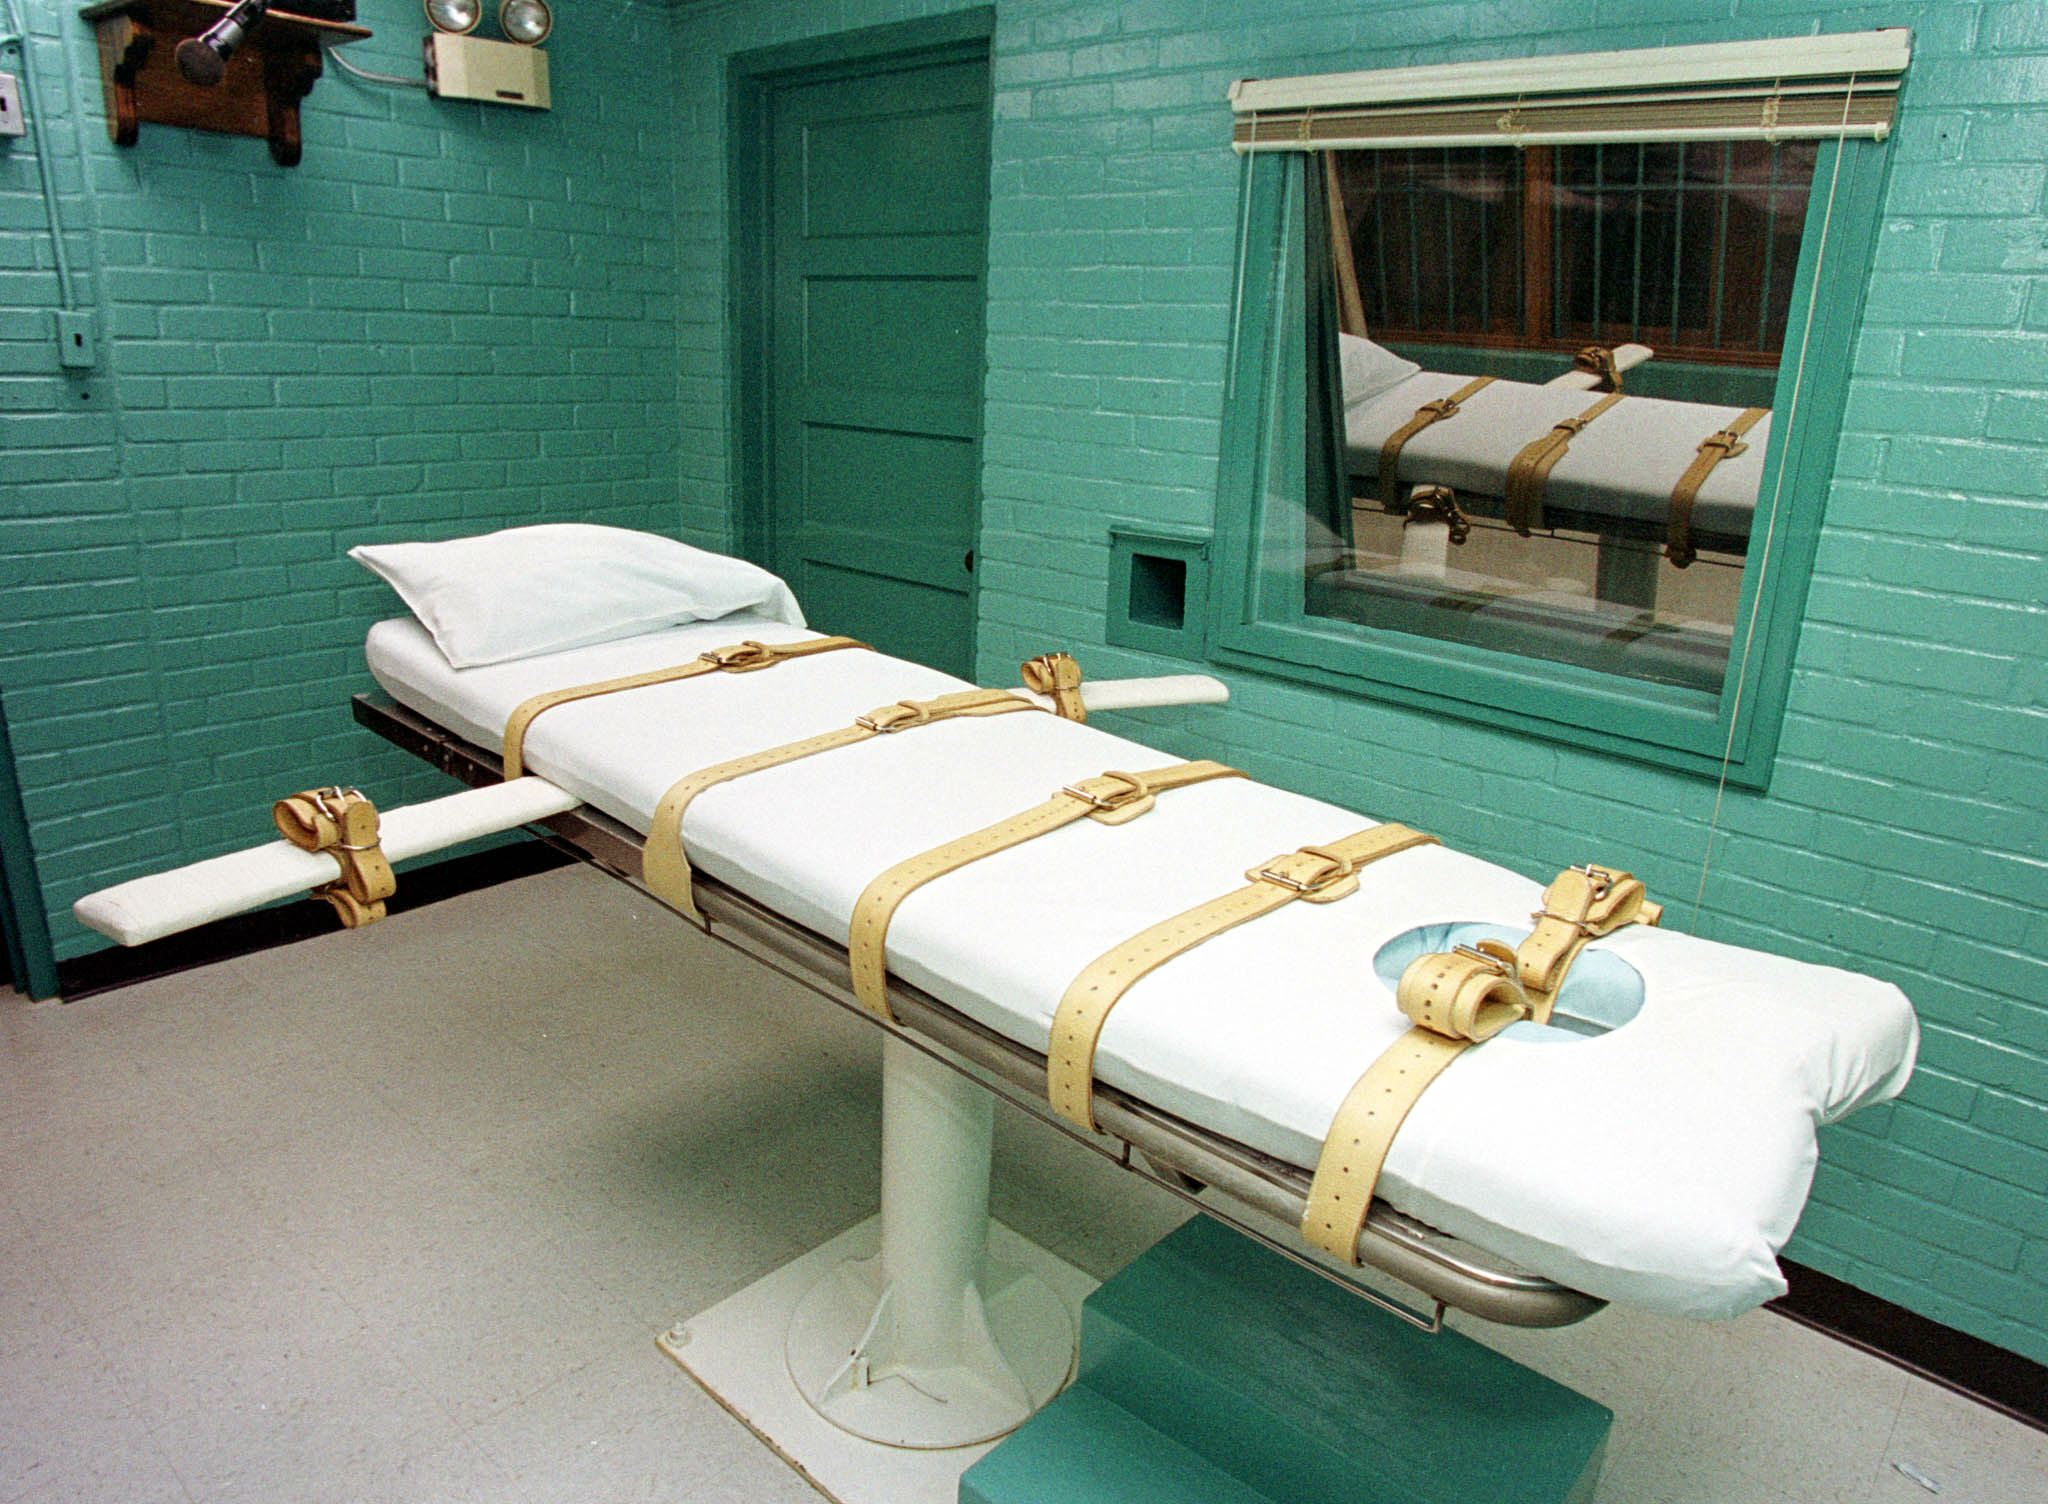 The death chamber at the Texas Department of Criminal Justice Huntsville Unit as seen on February 29, 2000. (Paul Buck/AFP/Getty Images)